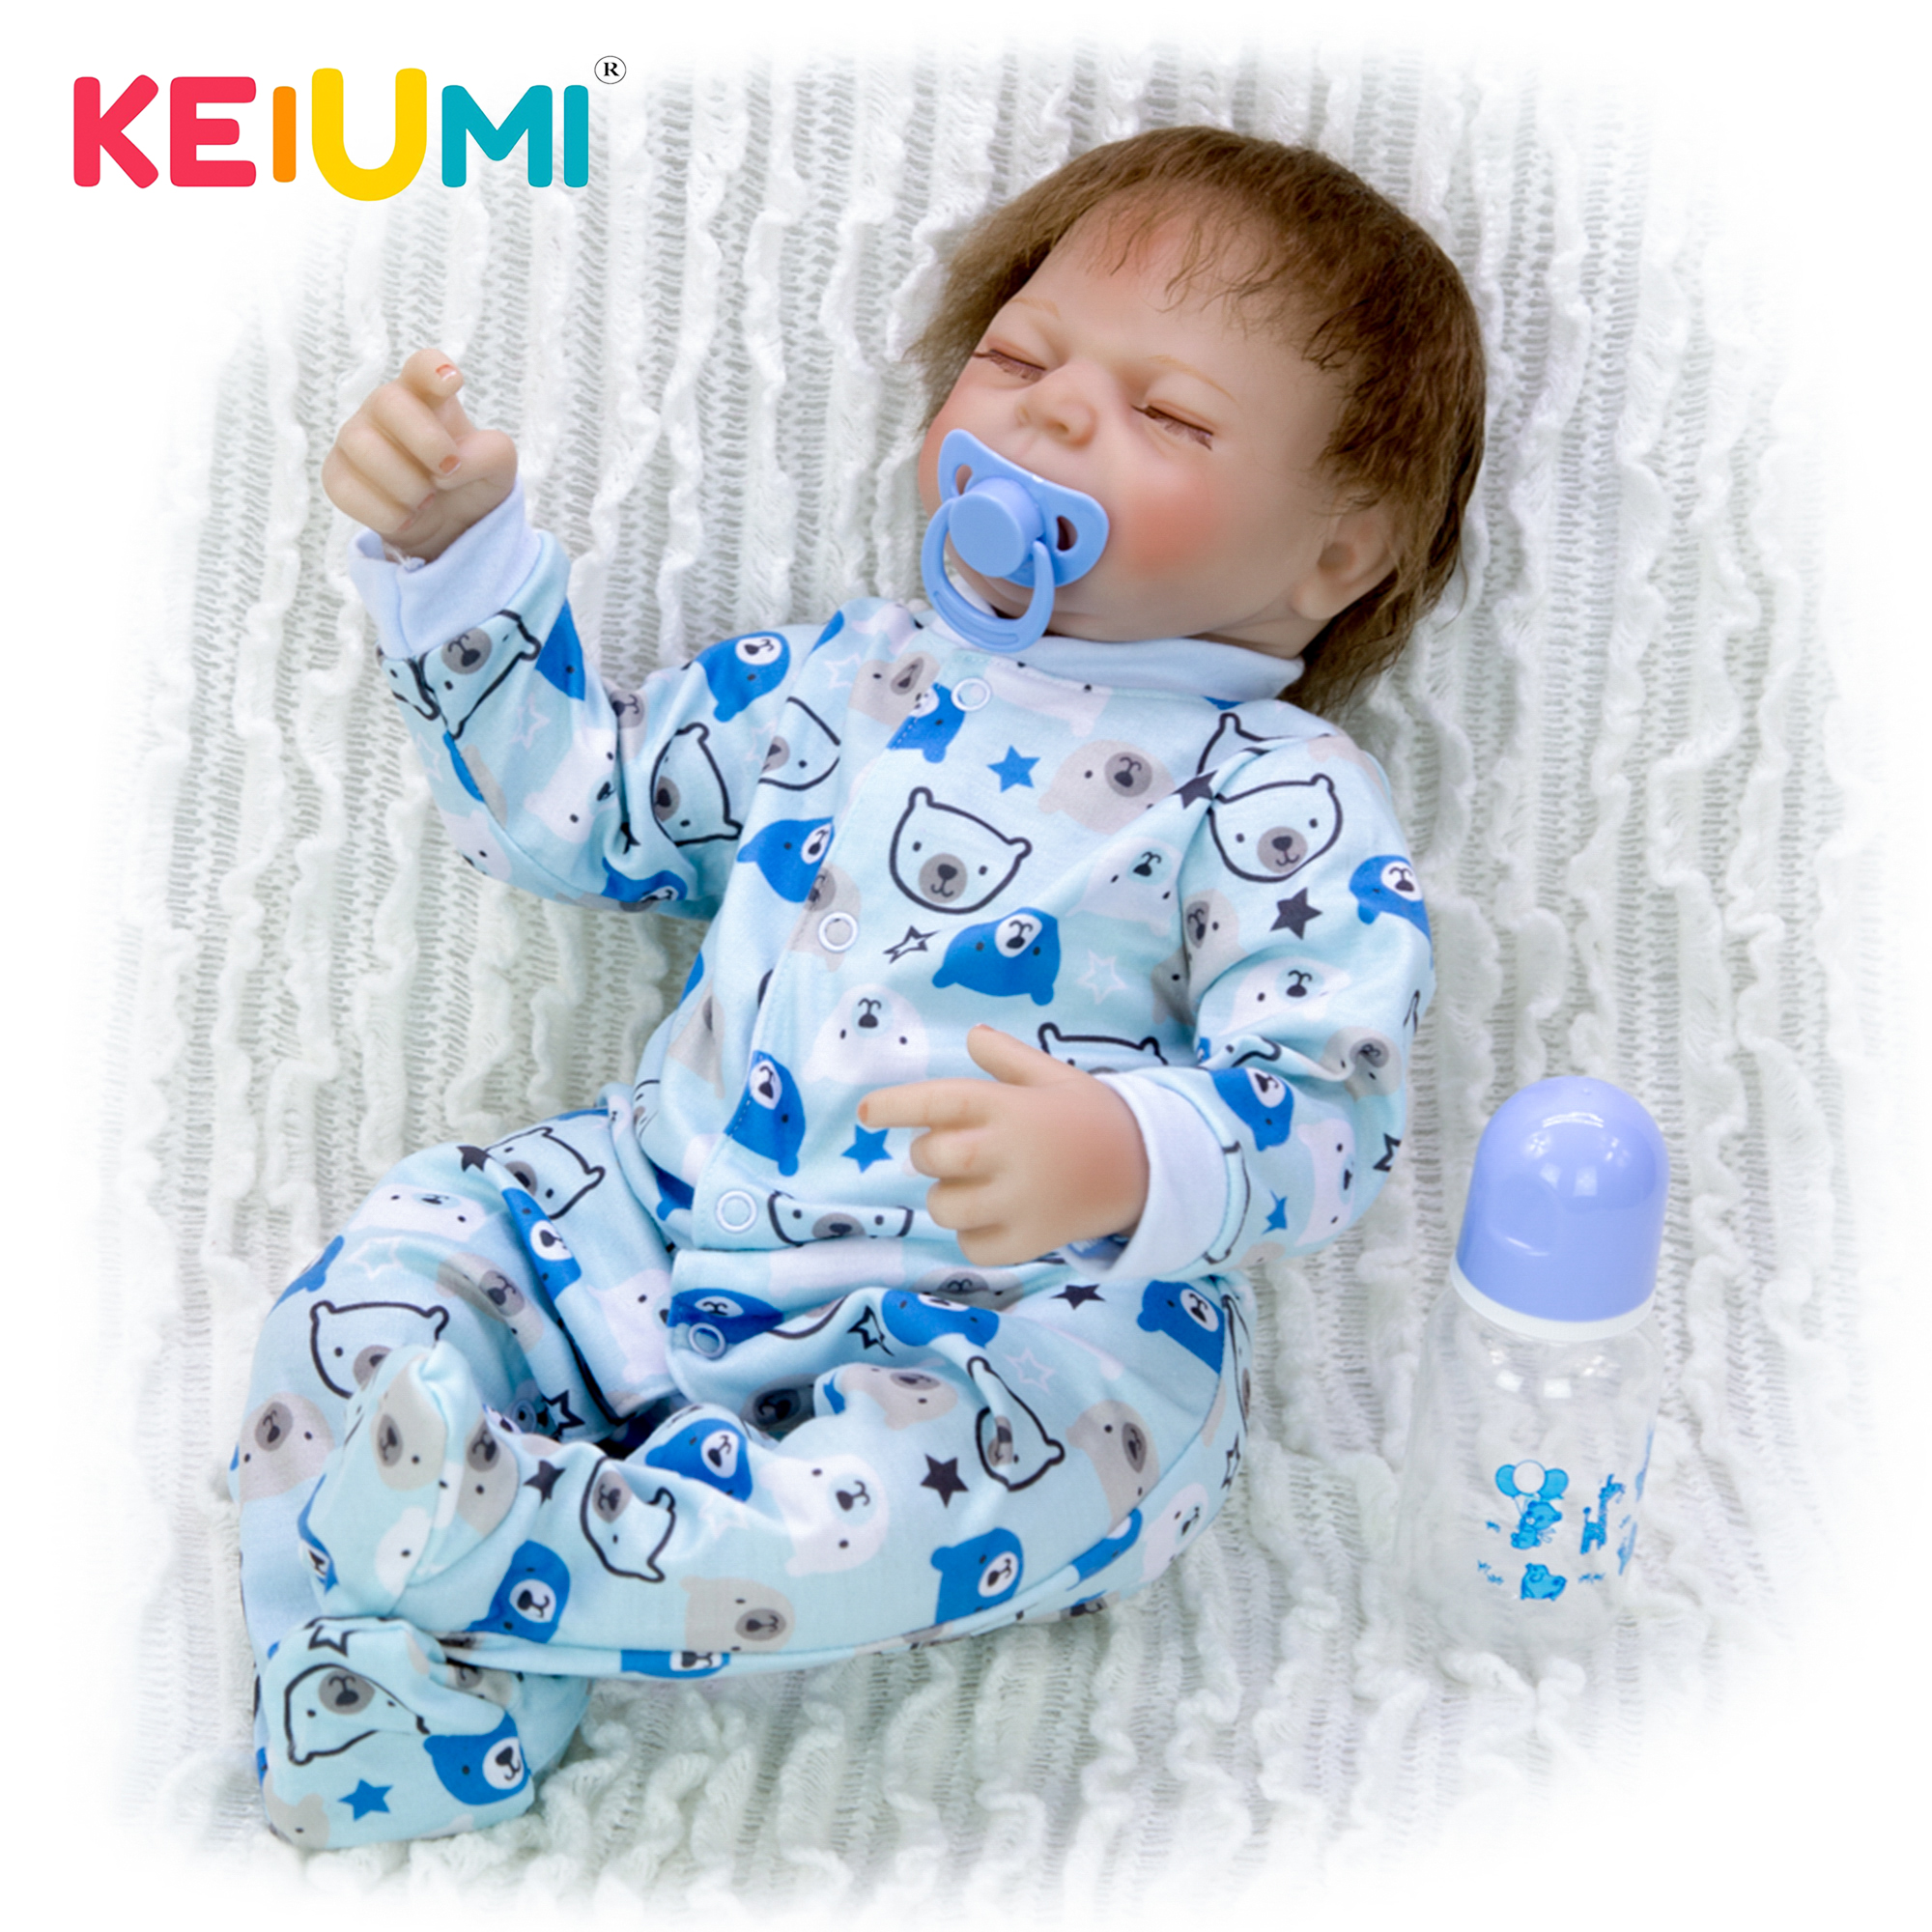 KEIUMI Lifelike Silicone Reborn Baby Doll 20 Inch PP Cotton Body Babies Boy Real Like Sleeping